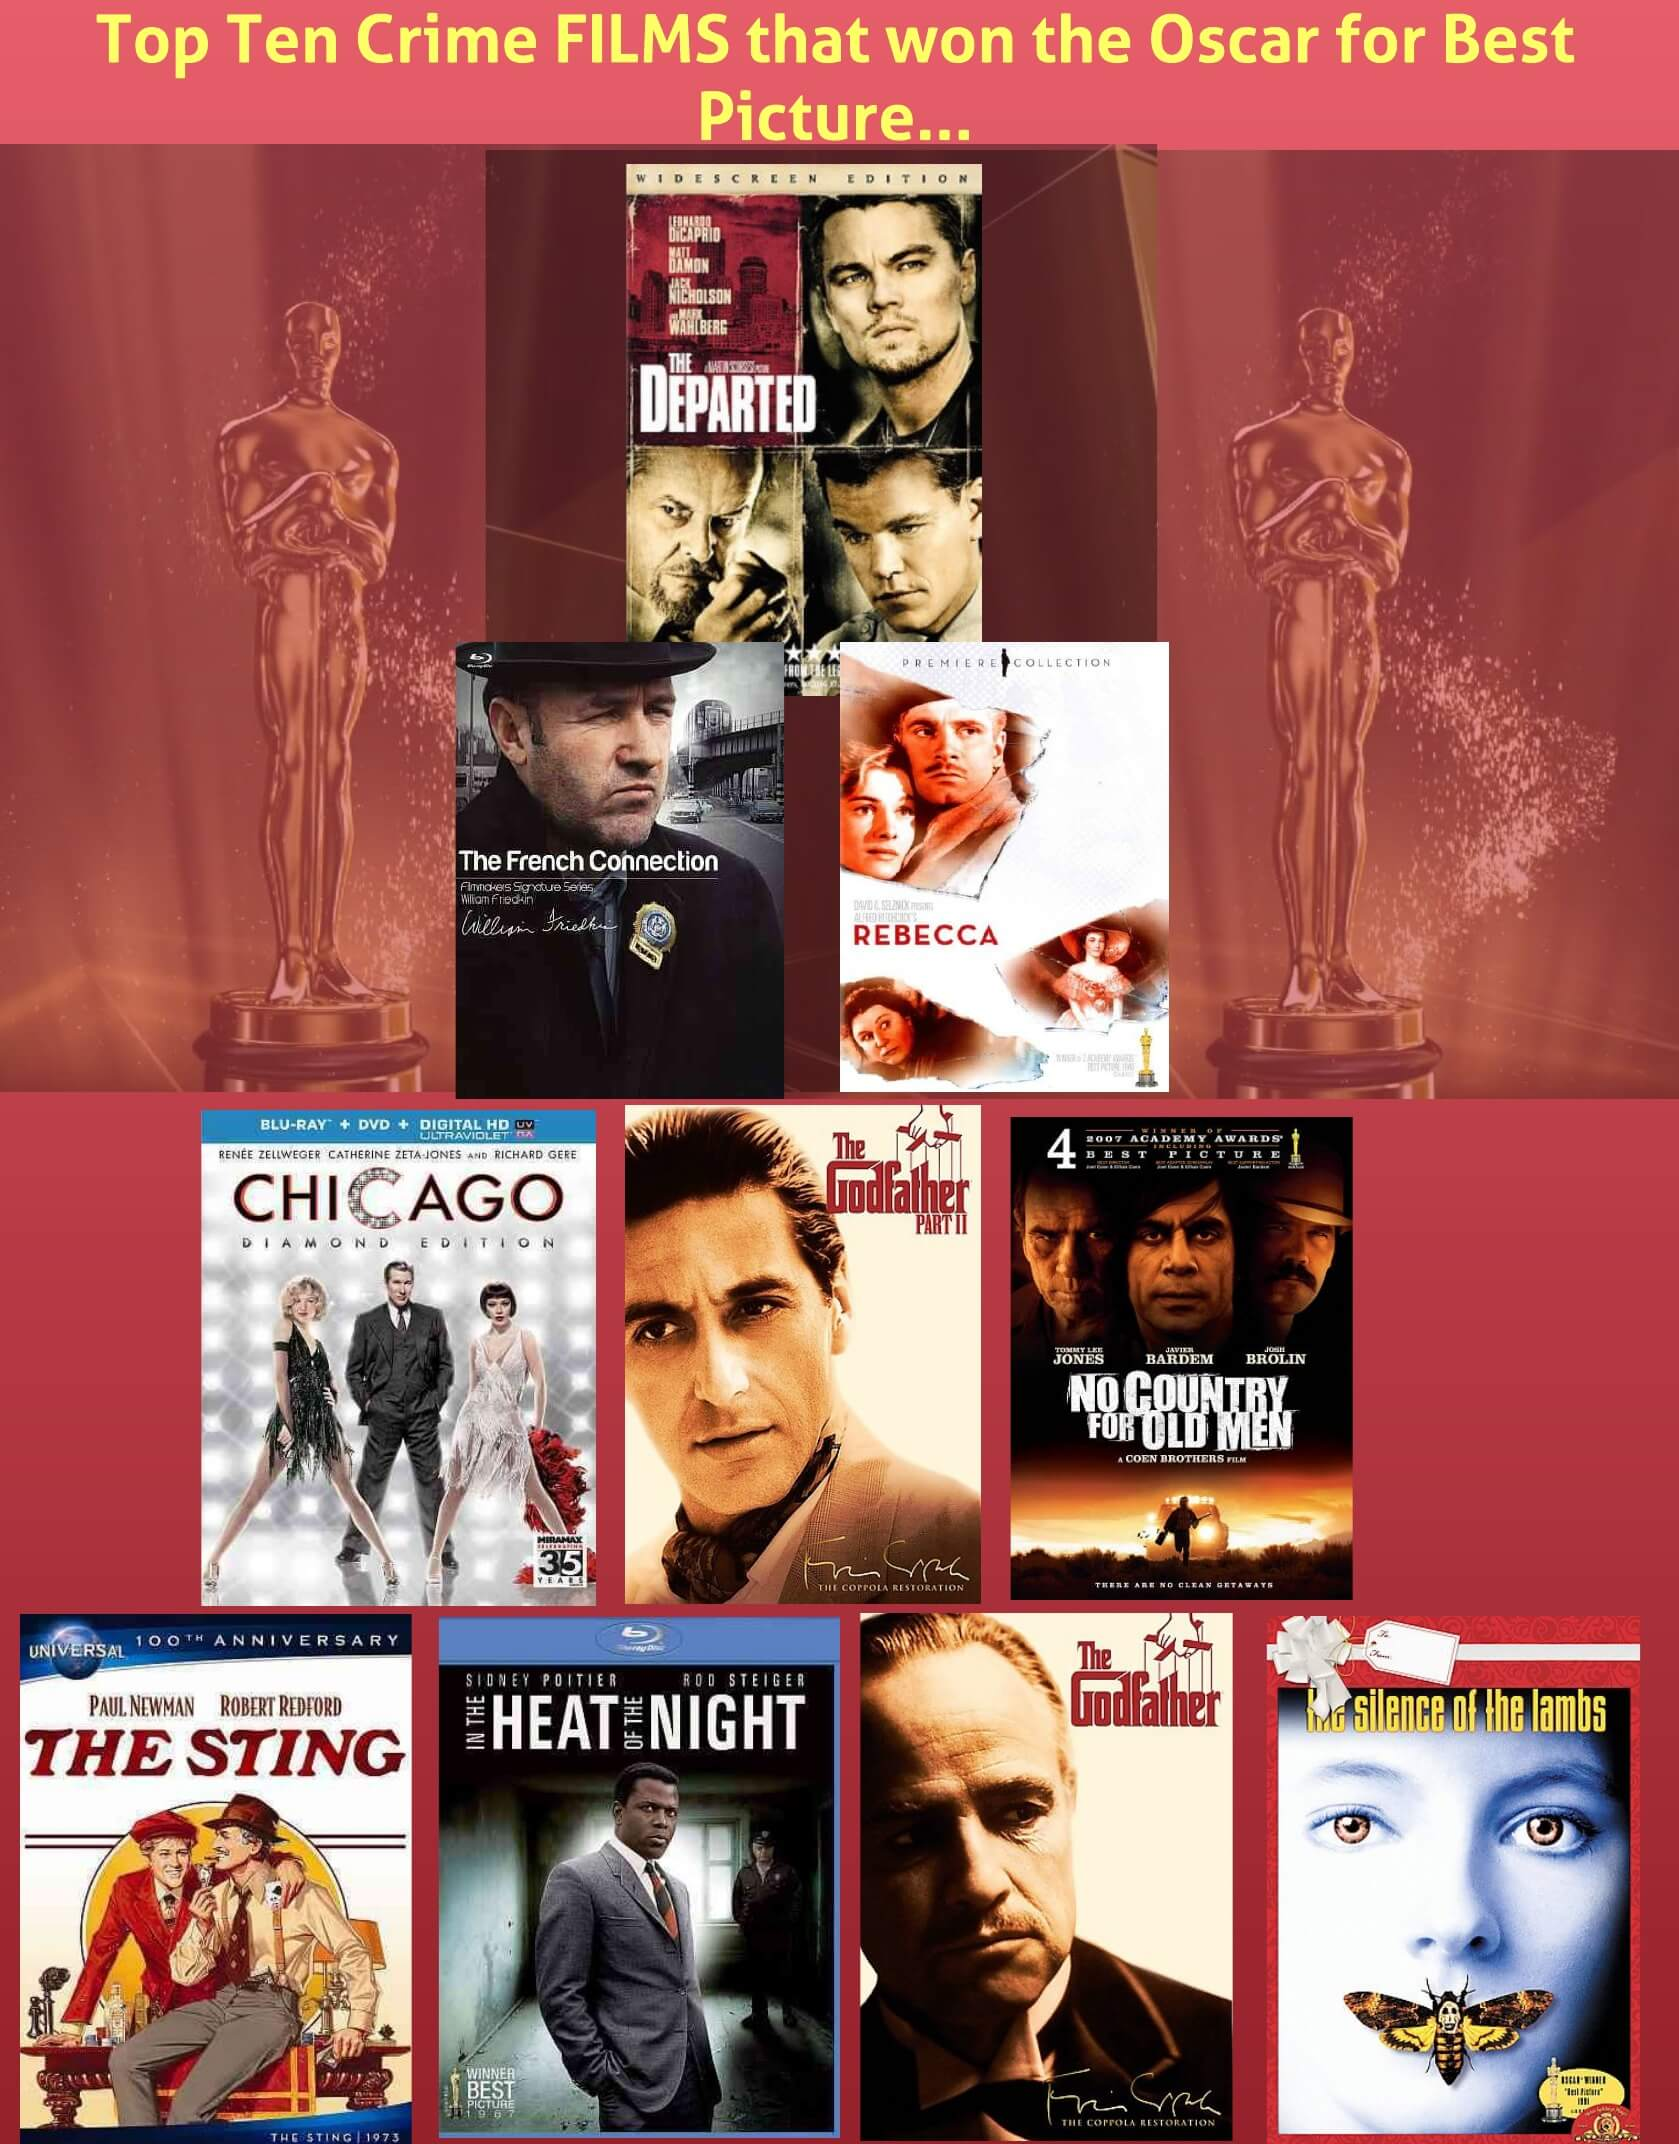 Top Ten Films that won the Oscar for best picture-2